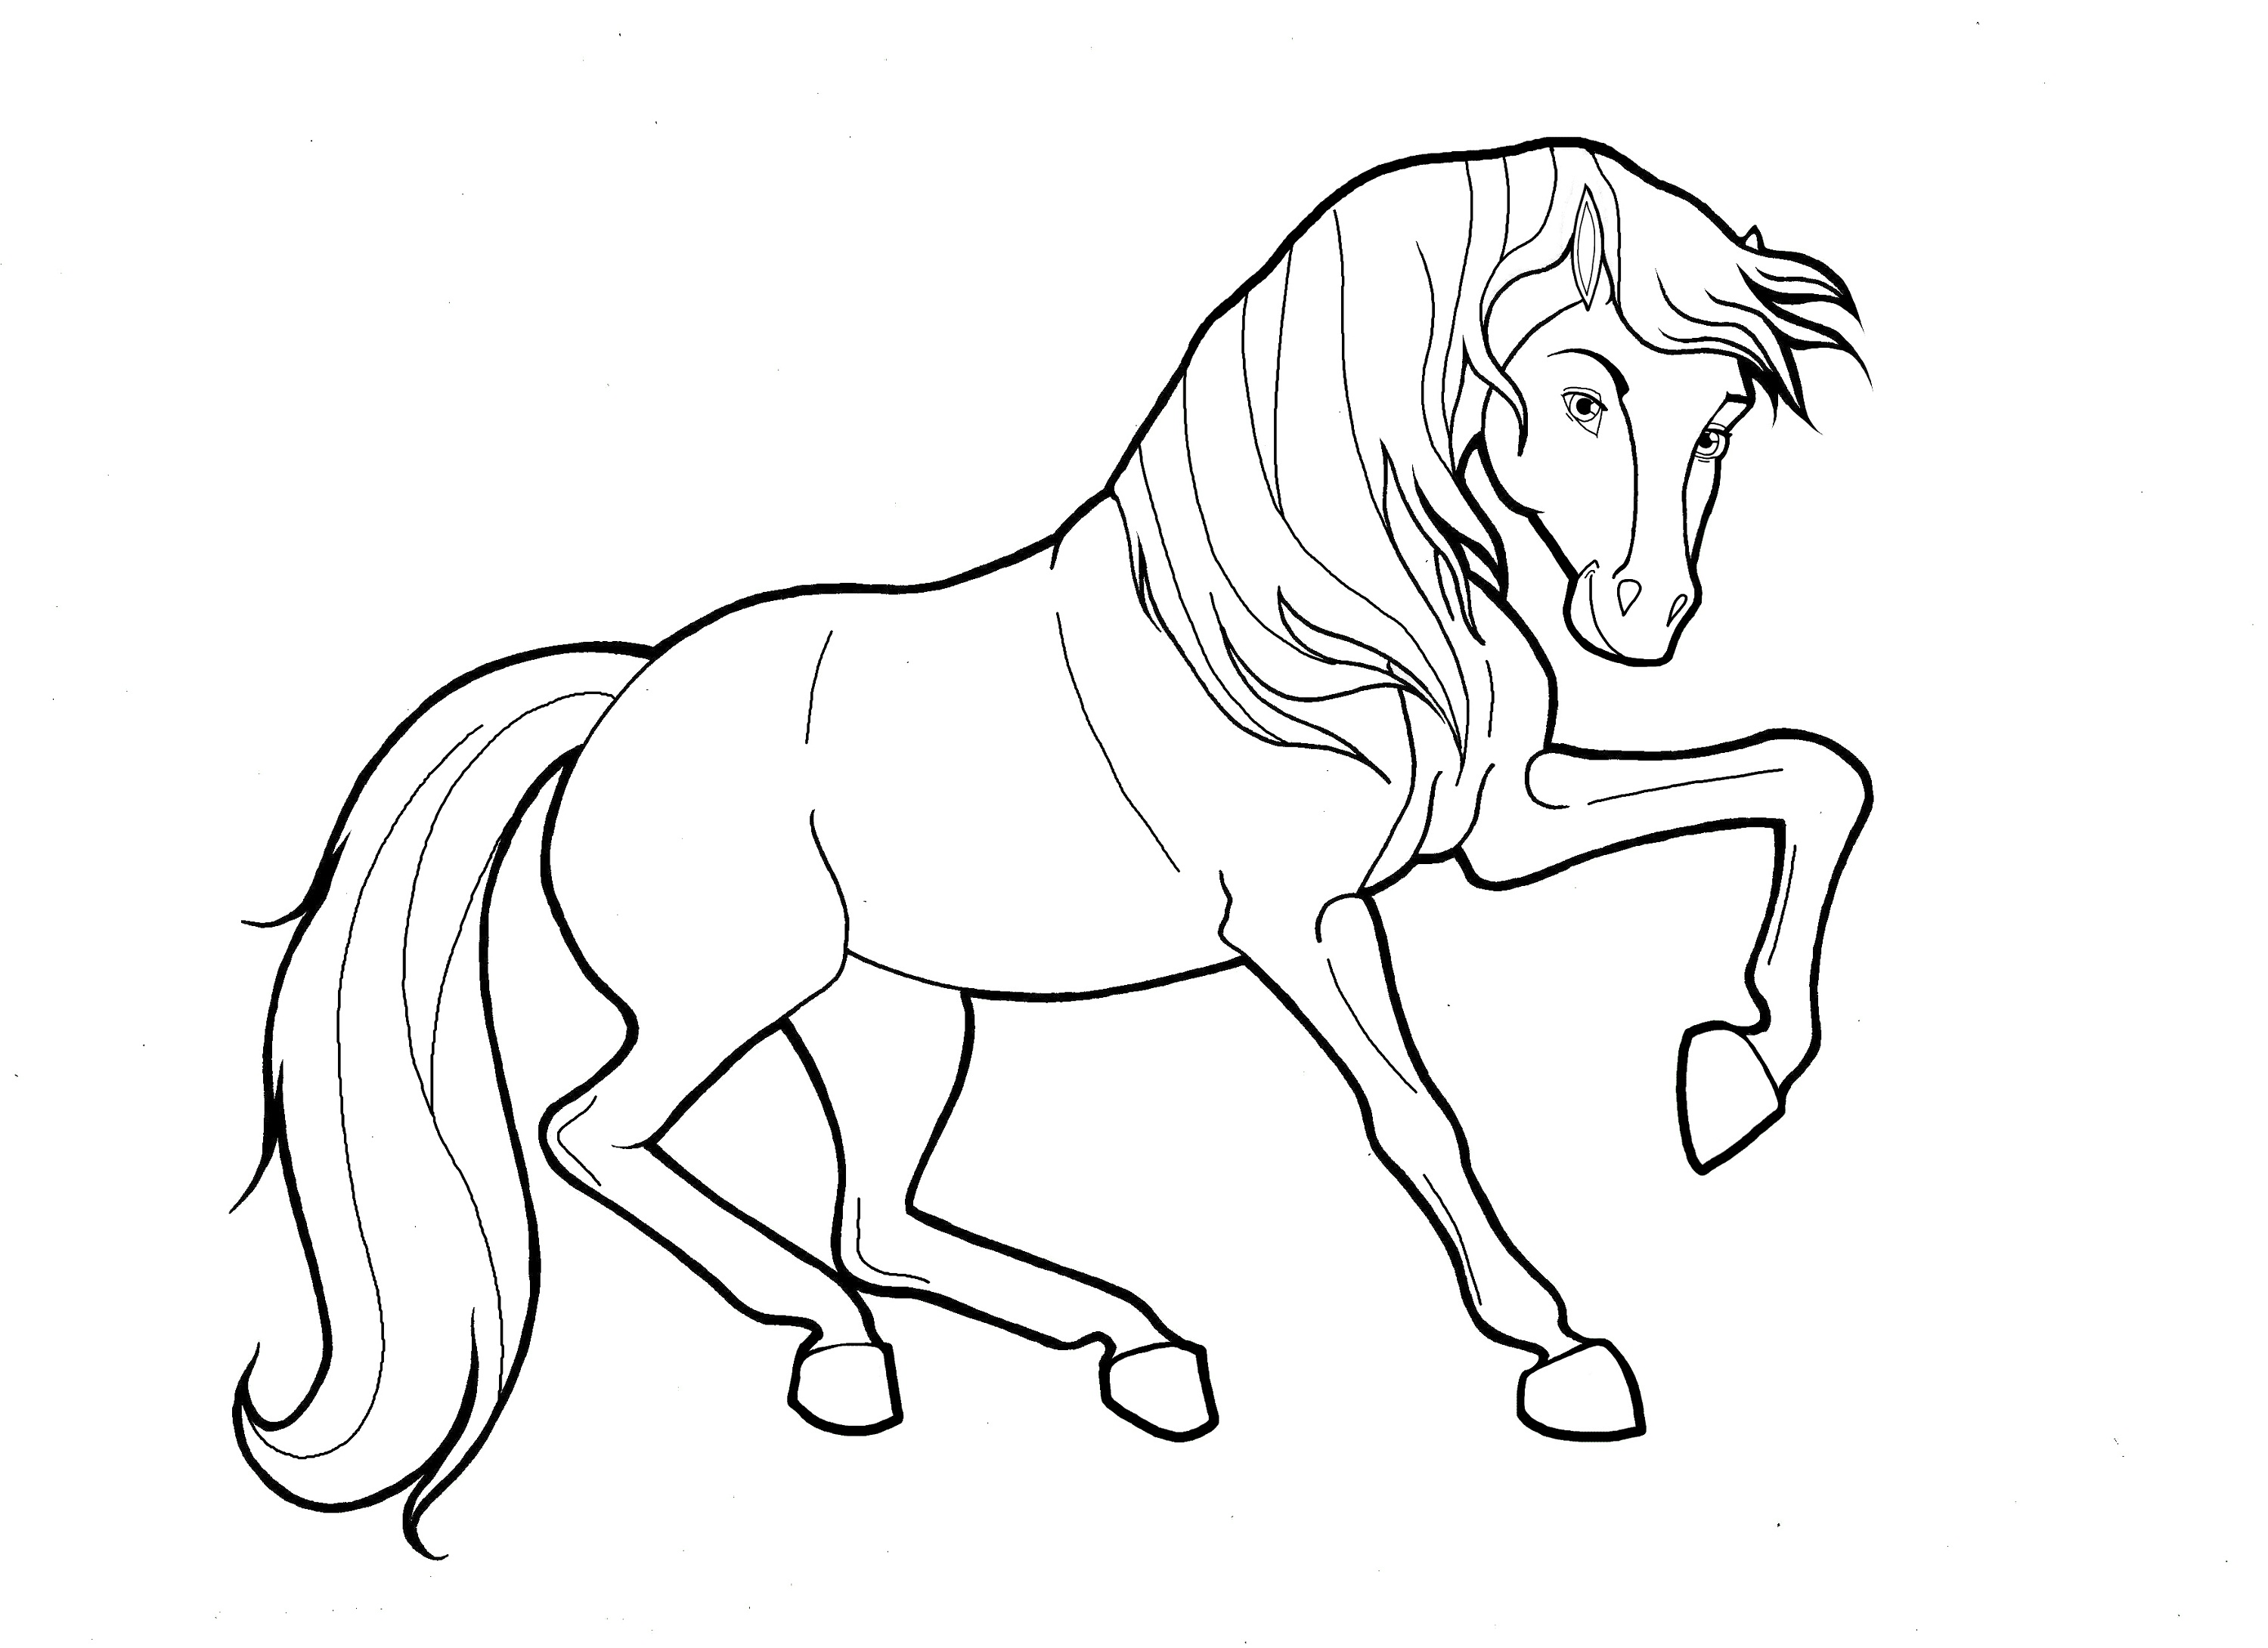 horse colouring picture free horse coloring pages colouring picture horse